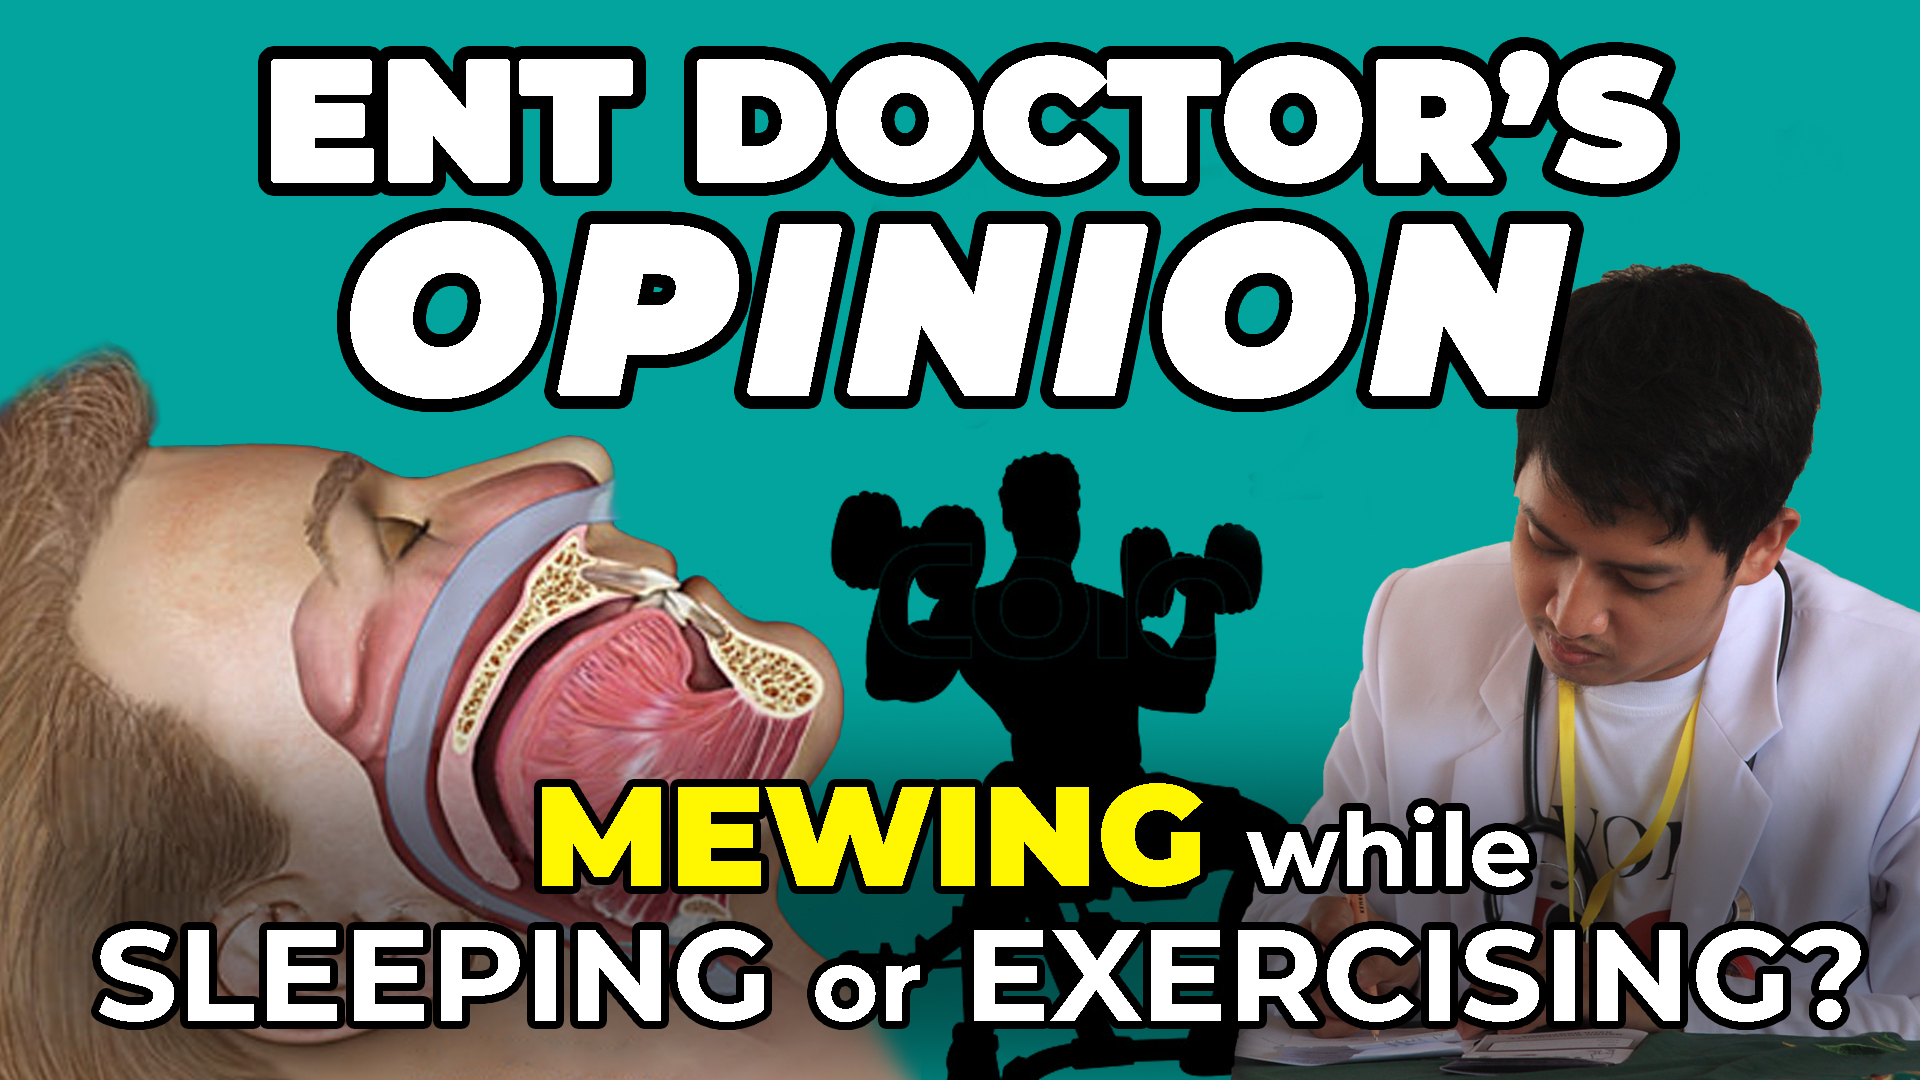 Mewing While Exercising And Sleeping | Is It Necessary? | ENT Doctor's Opinion